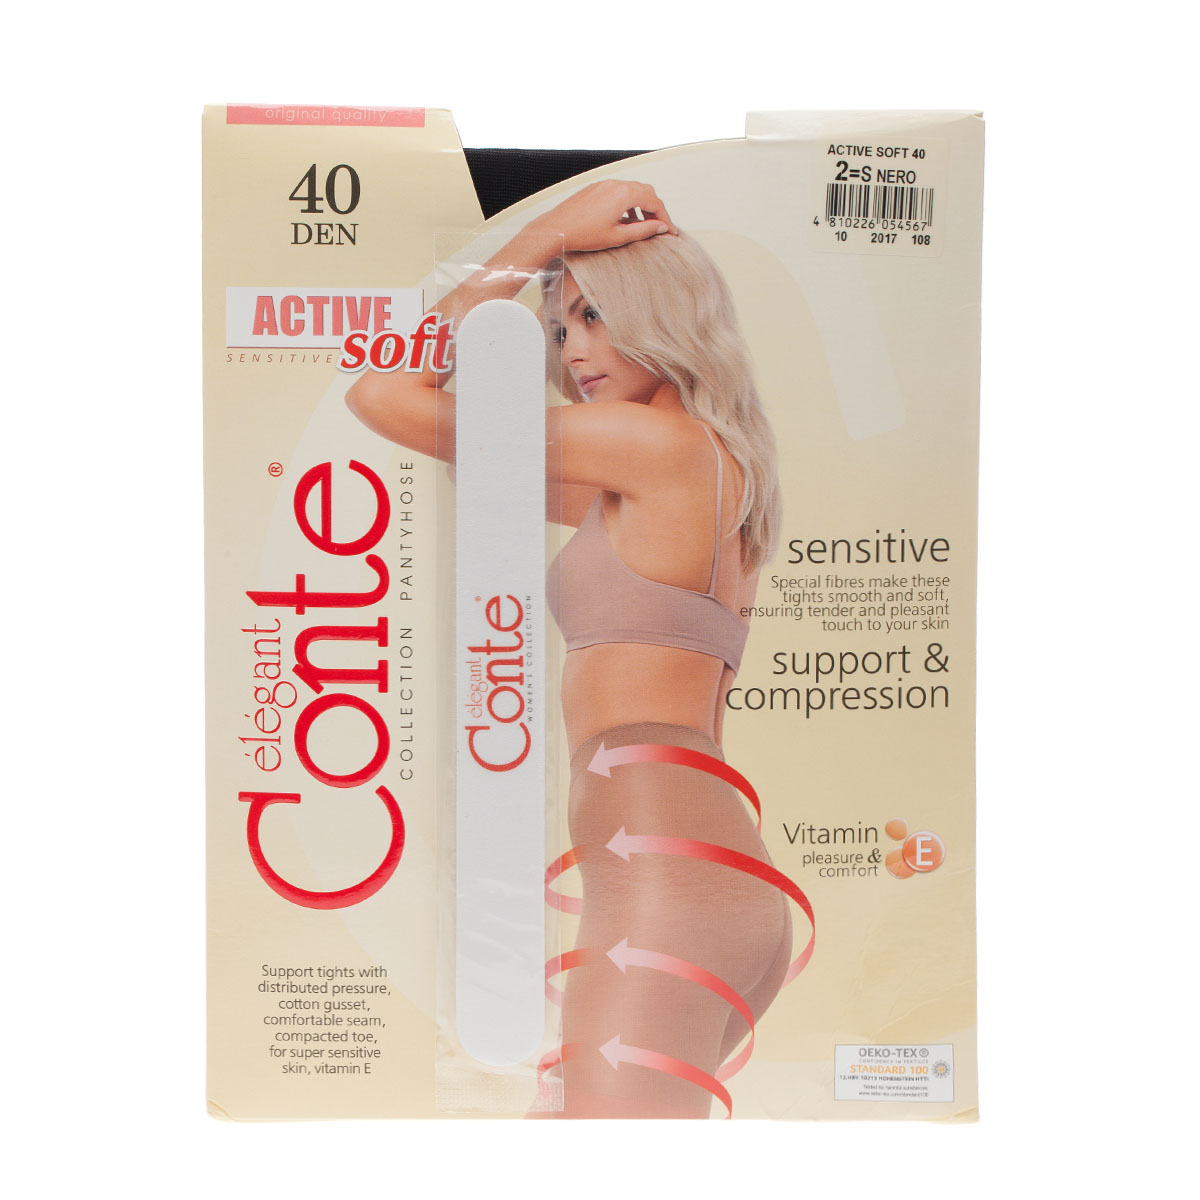 Колготки Conte elegant, Active soft 40